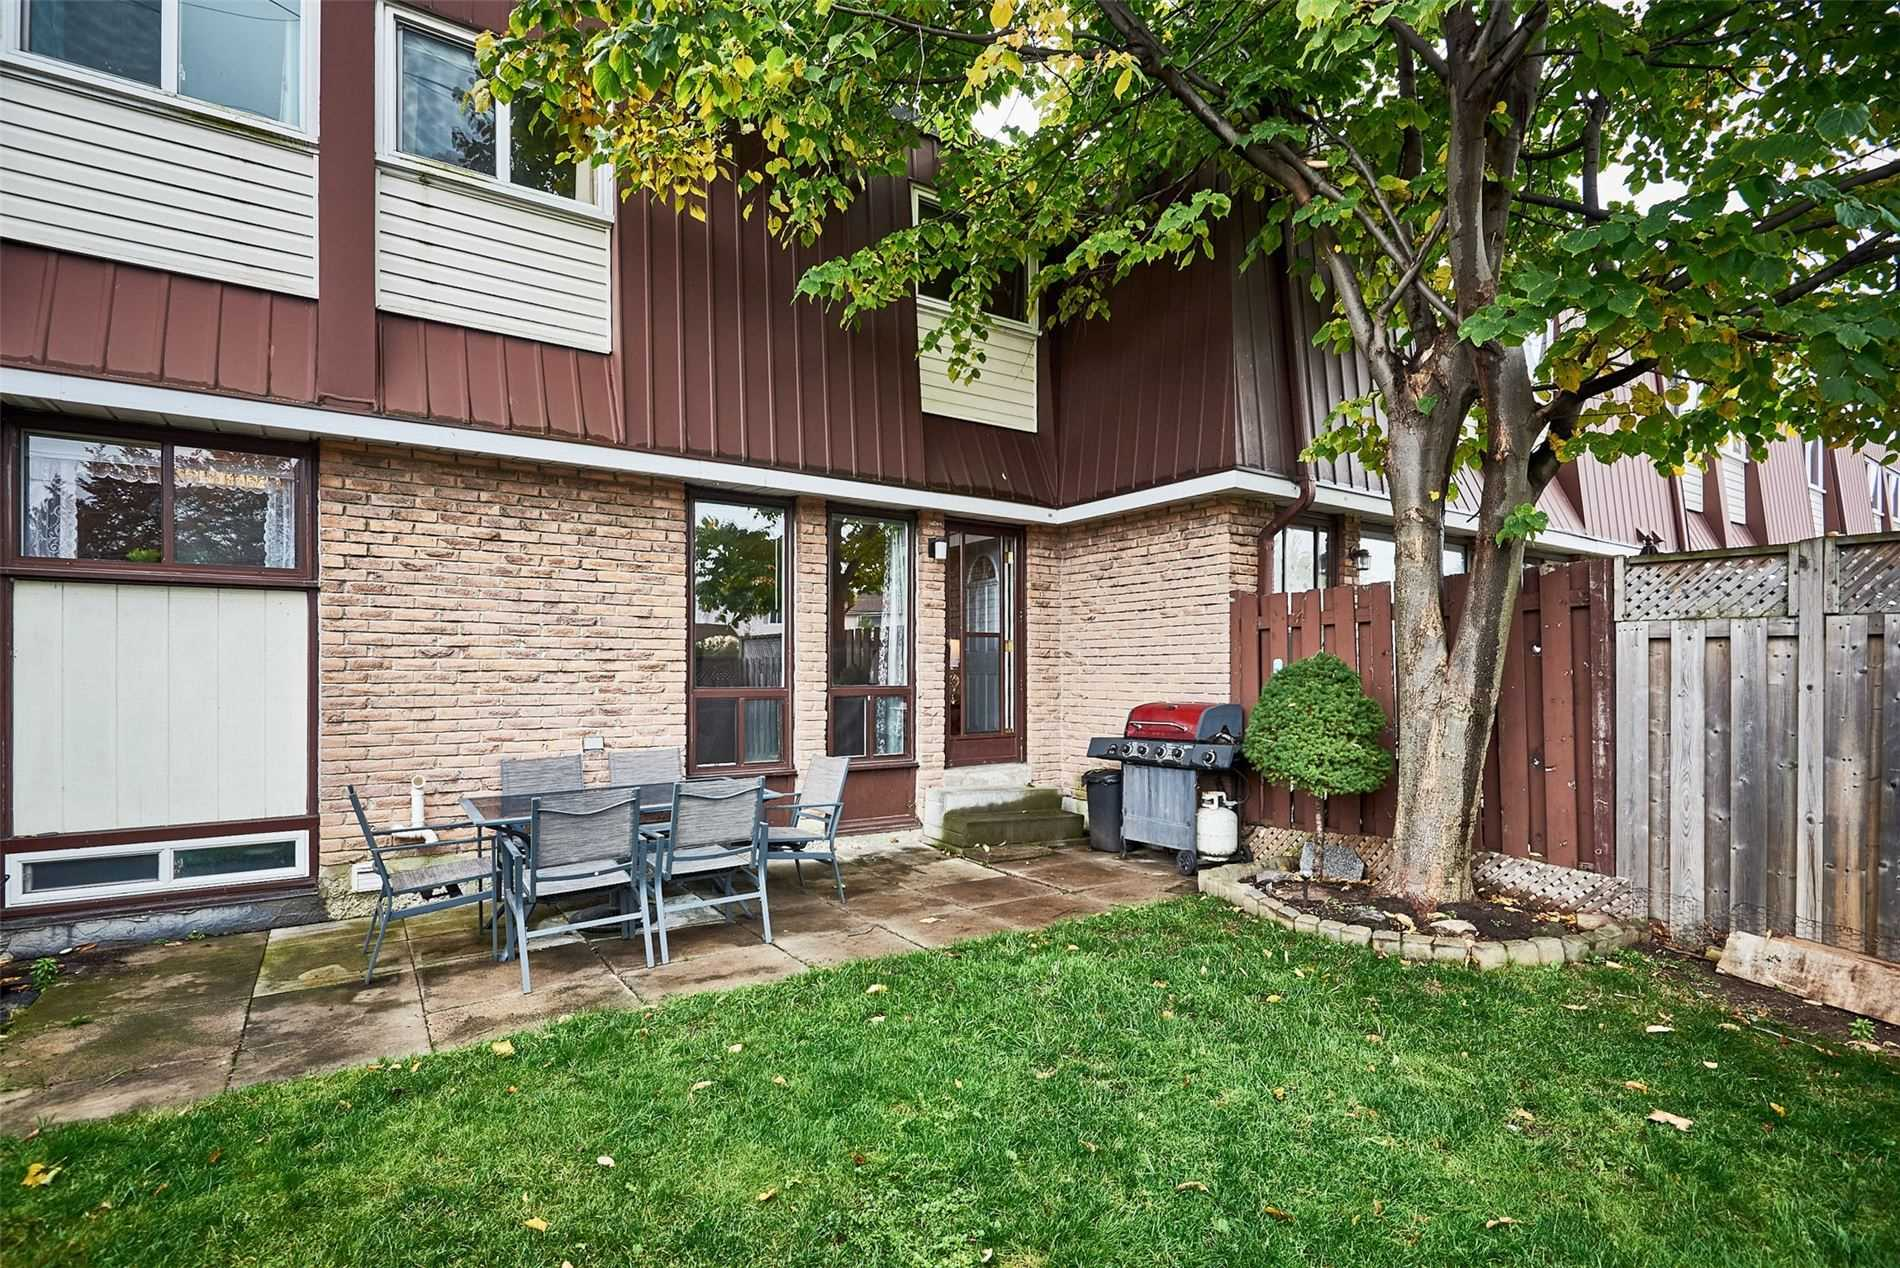 1333 Mary St, Oshawa, Ontario L1G6Z2, 3 Bedrooms Bedrooms, 5 Rooms Rooms,1 BathroomBathrooms,Condo Townhouse,For Sale,Mary,E4969859